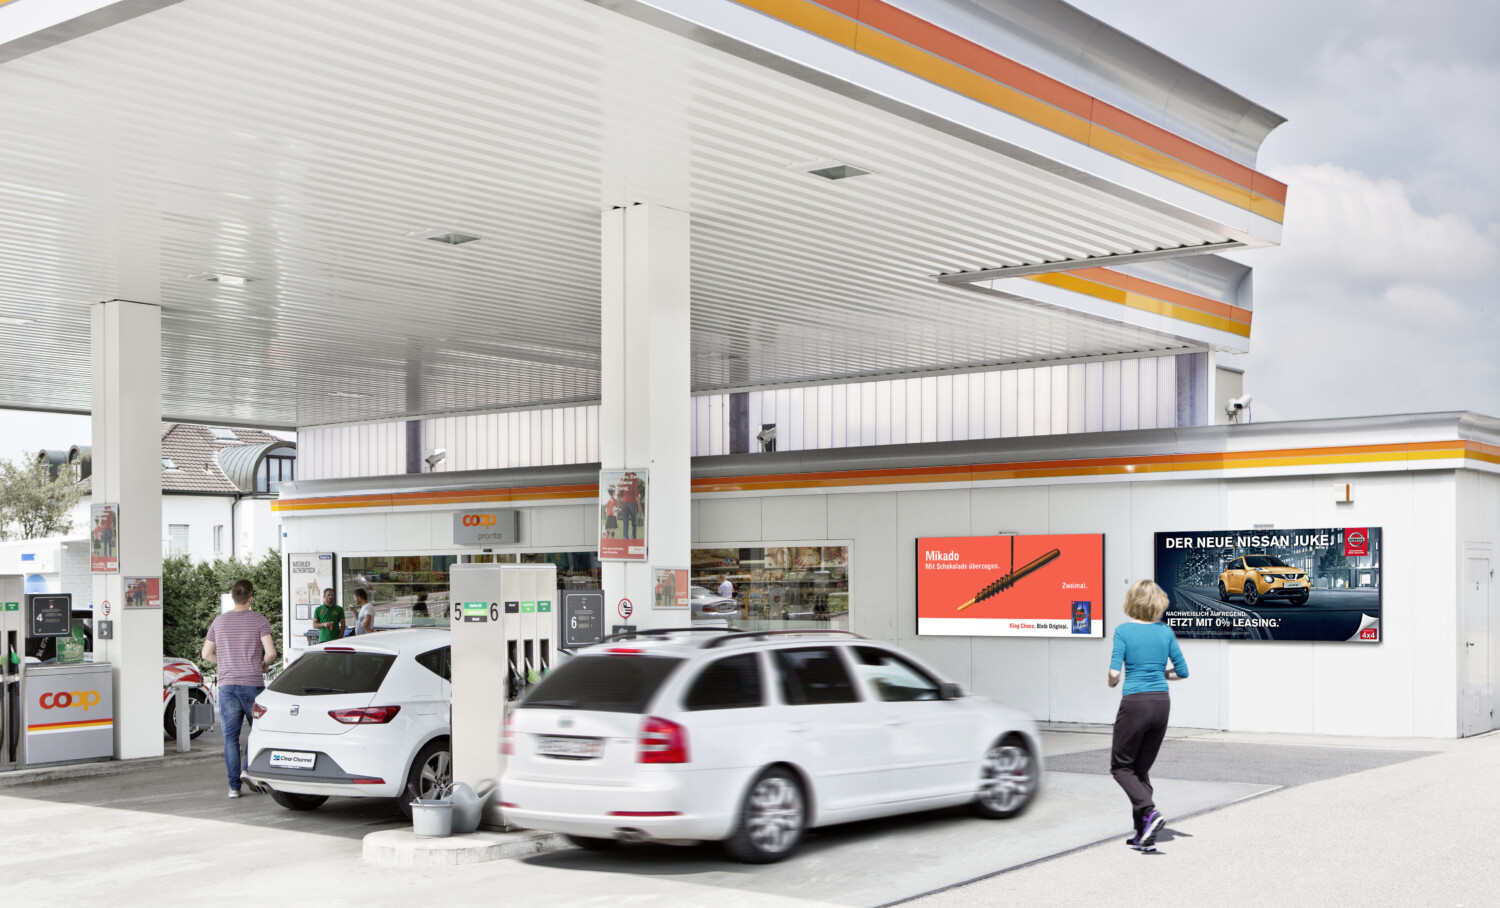 Poster advertising at the POS and filling stations - Increase sales at the POS with poster - reach target group with poster -high reach, cheap, simple.